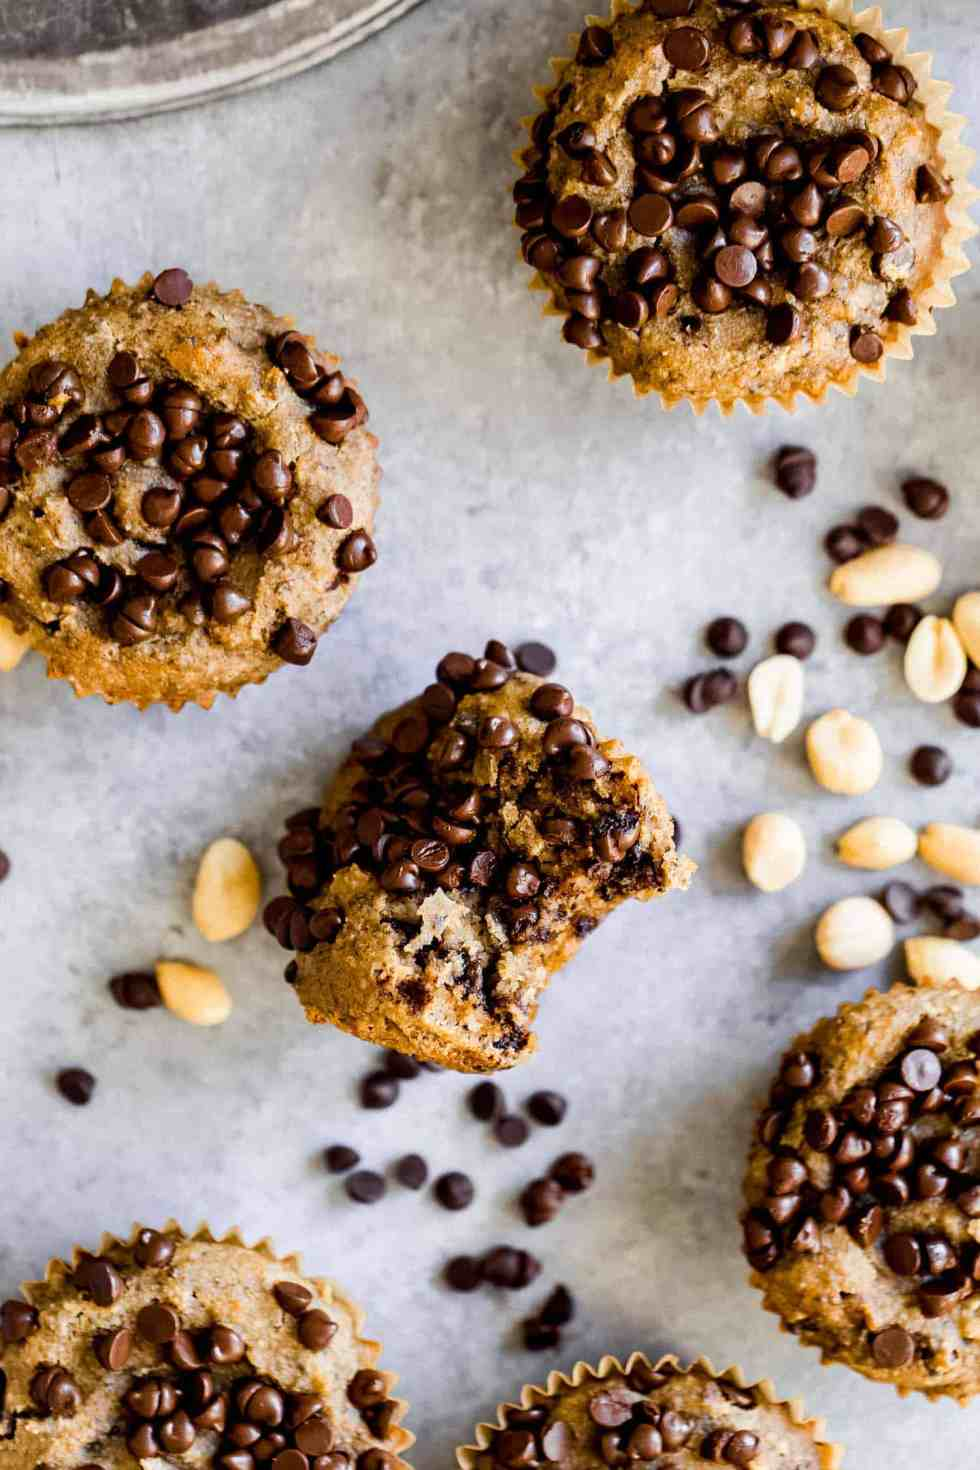 muffins with dark chocolate chips on top on a grey board